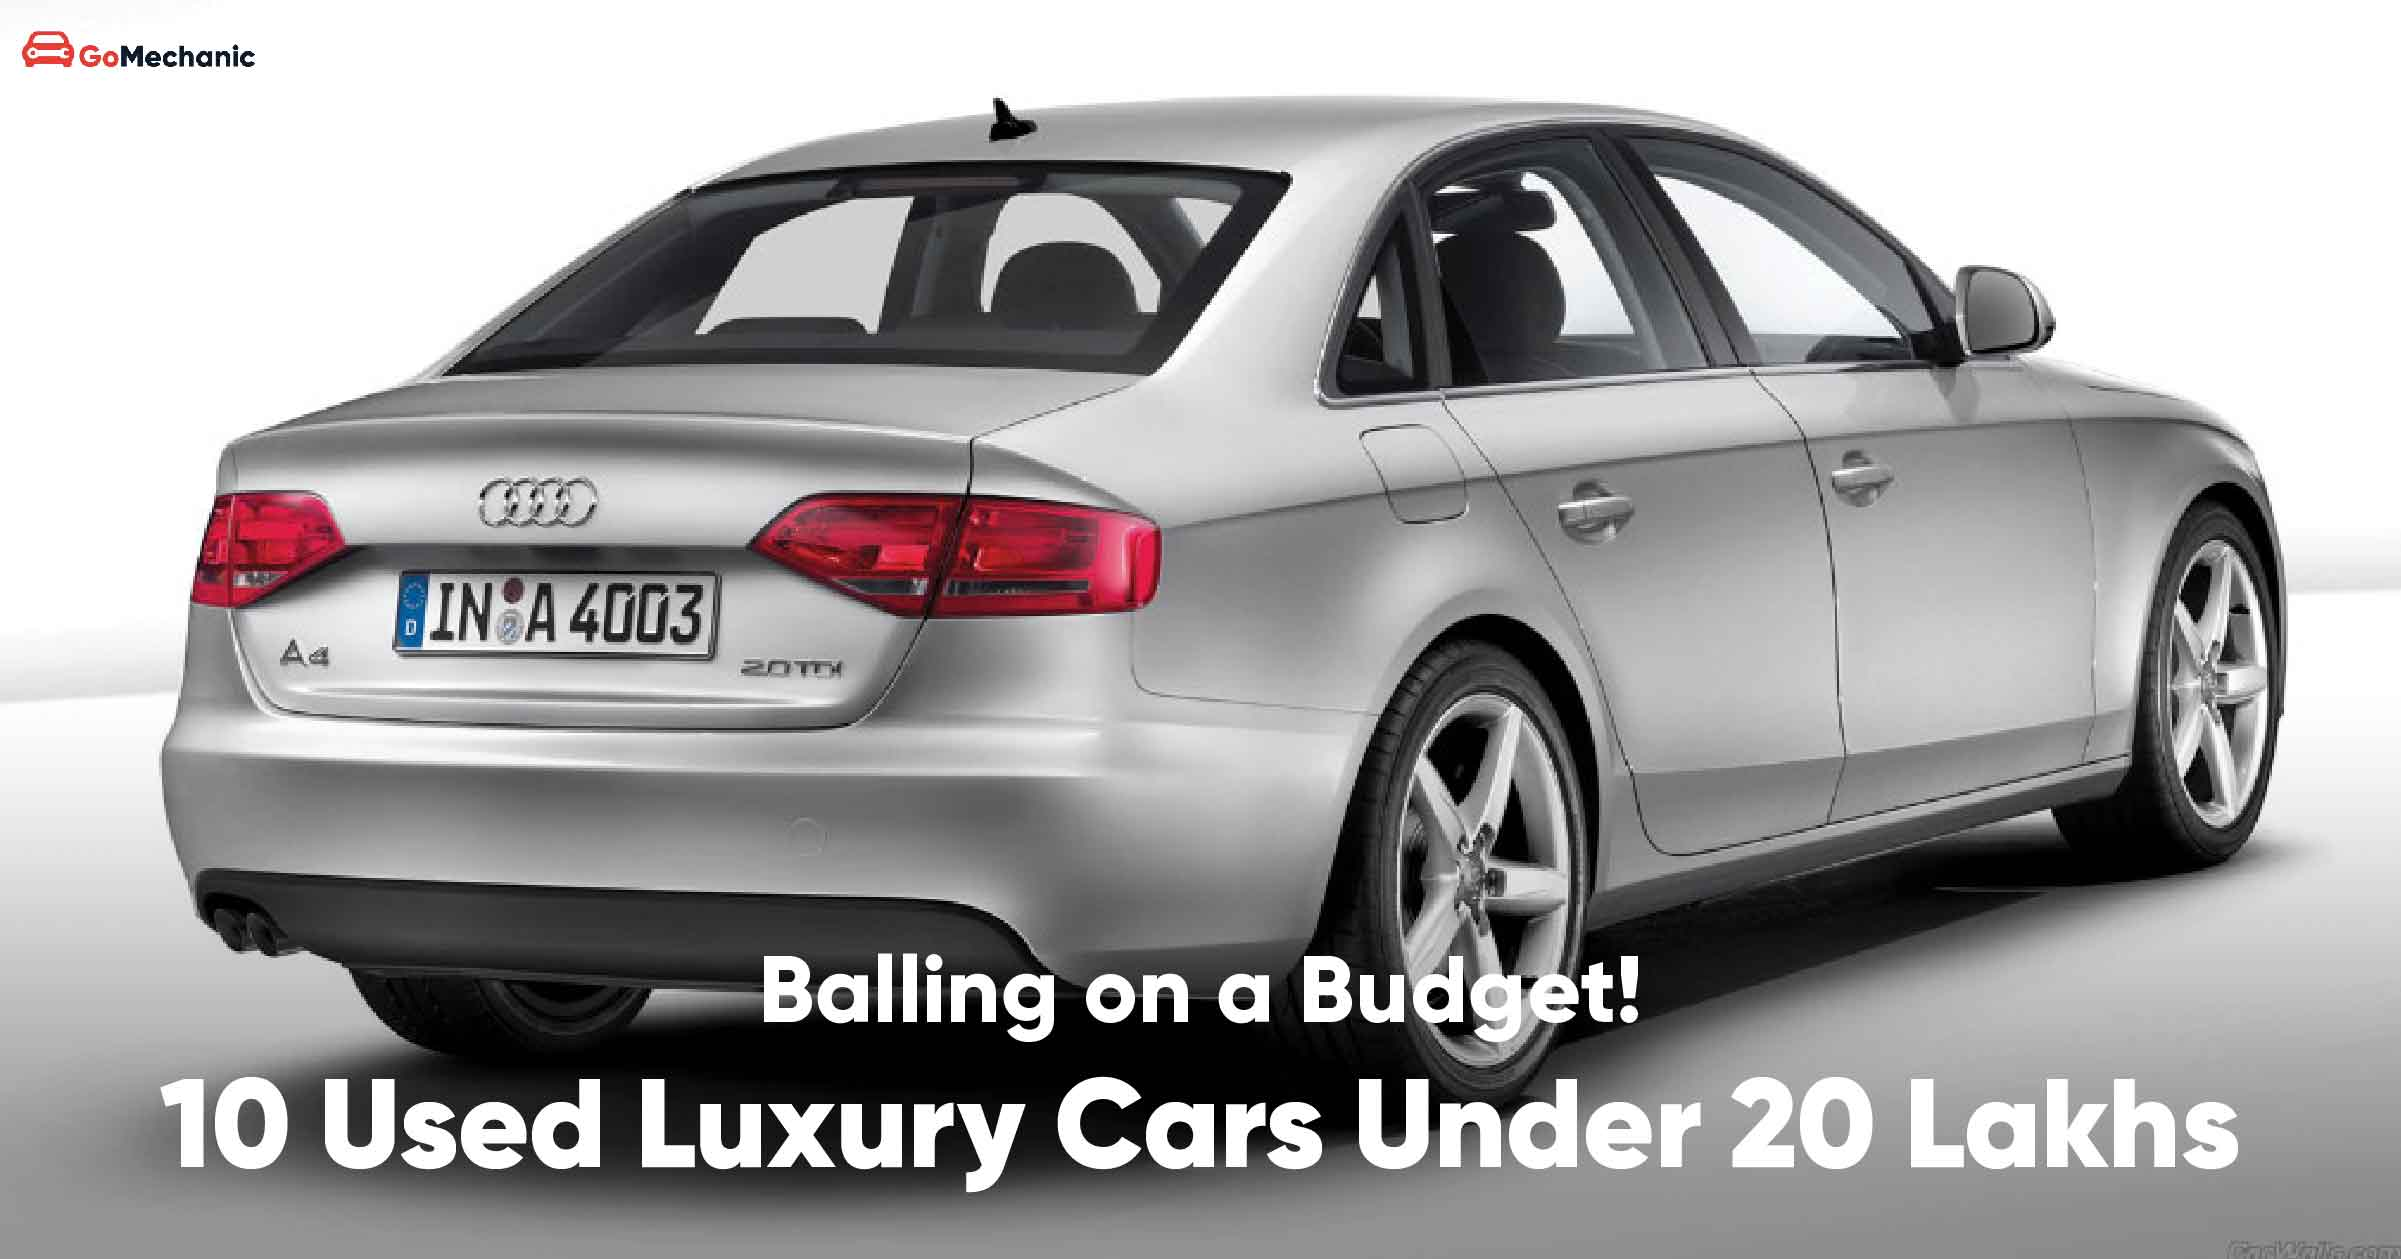 10 Used Luxury Cars That You Can Buy For Under 20 Lakhs